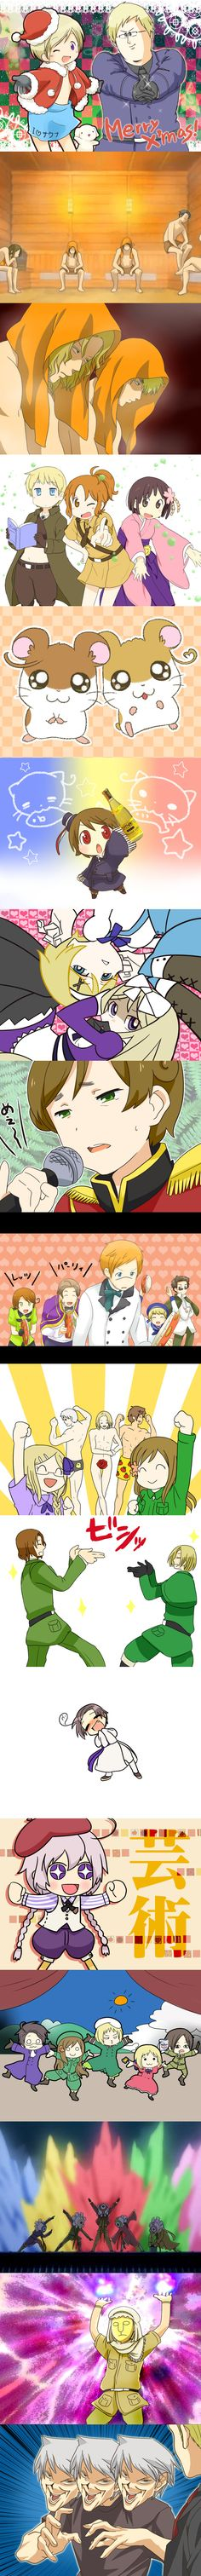 Axis Powers: Hetalia, Switzerland, New Zealand, Lithuania, Finland  #aph #hetalia #lol